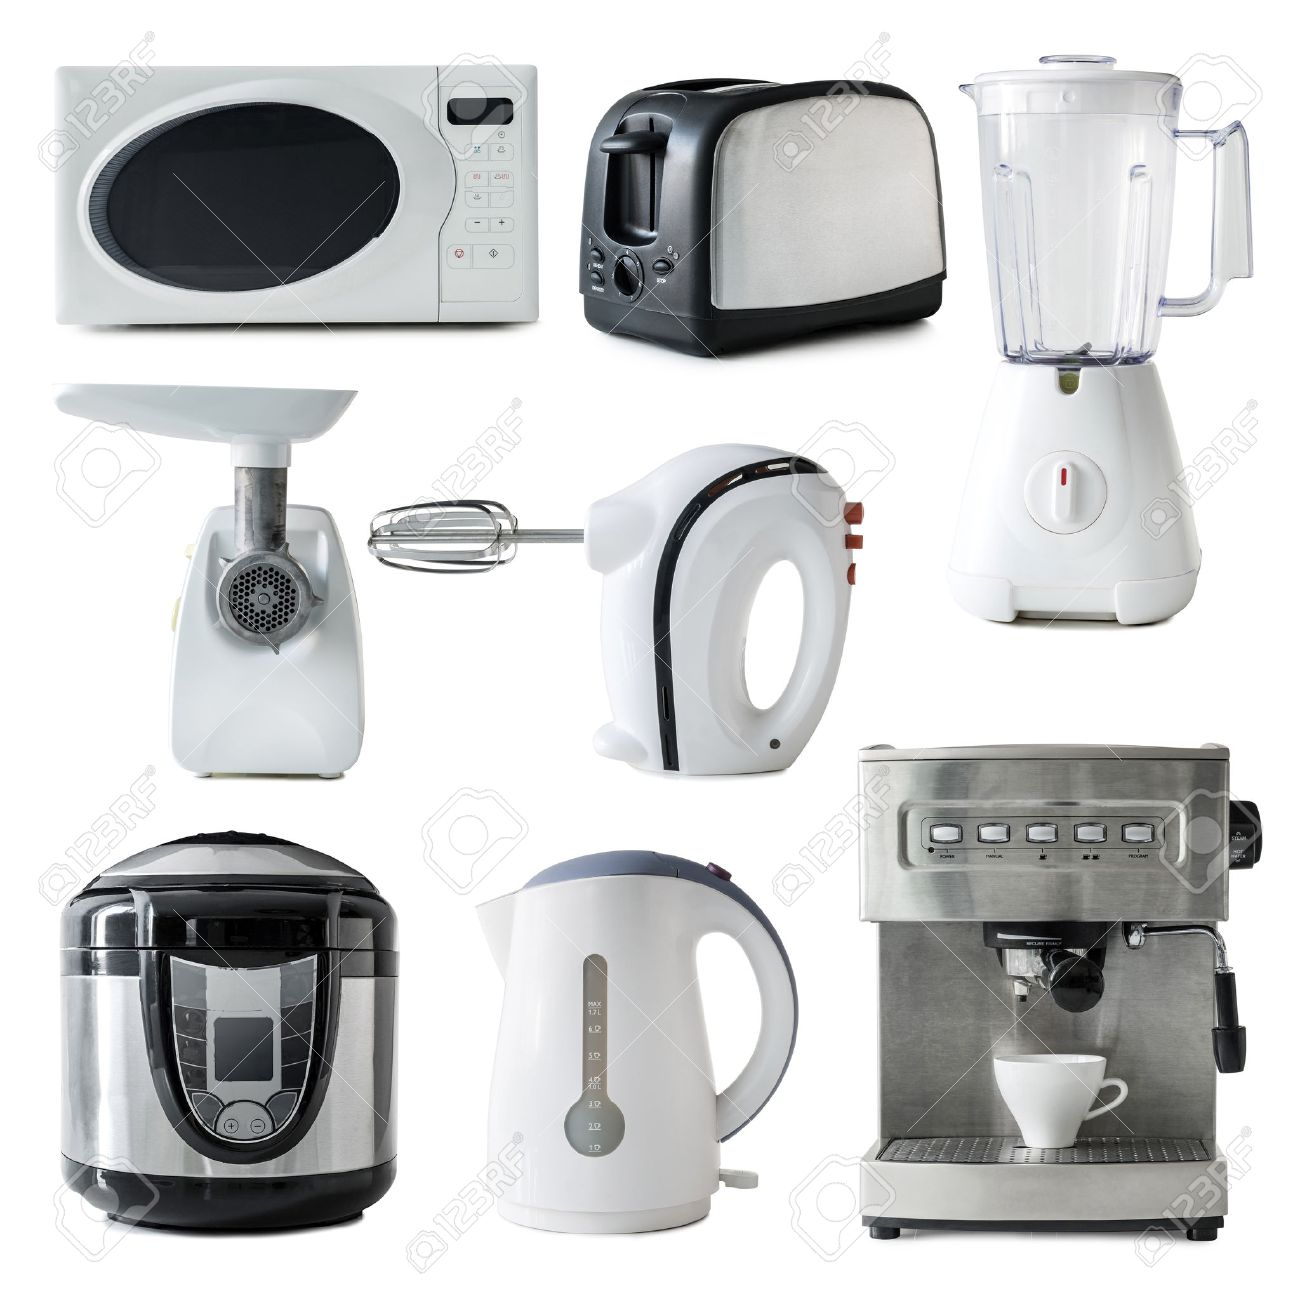 Uncategorized Images Of Kitchen Appliances kitchen appliances images stock pictures royalty free collage of different types isolated on white background